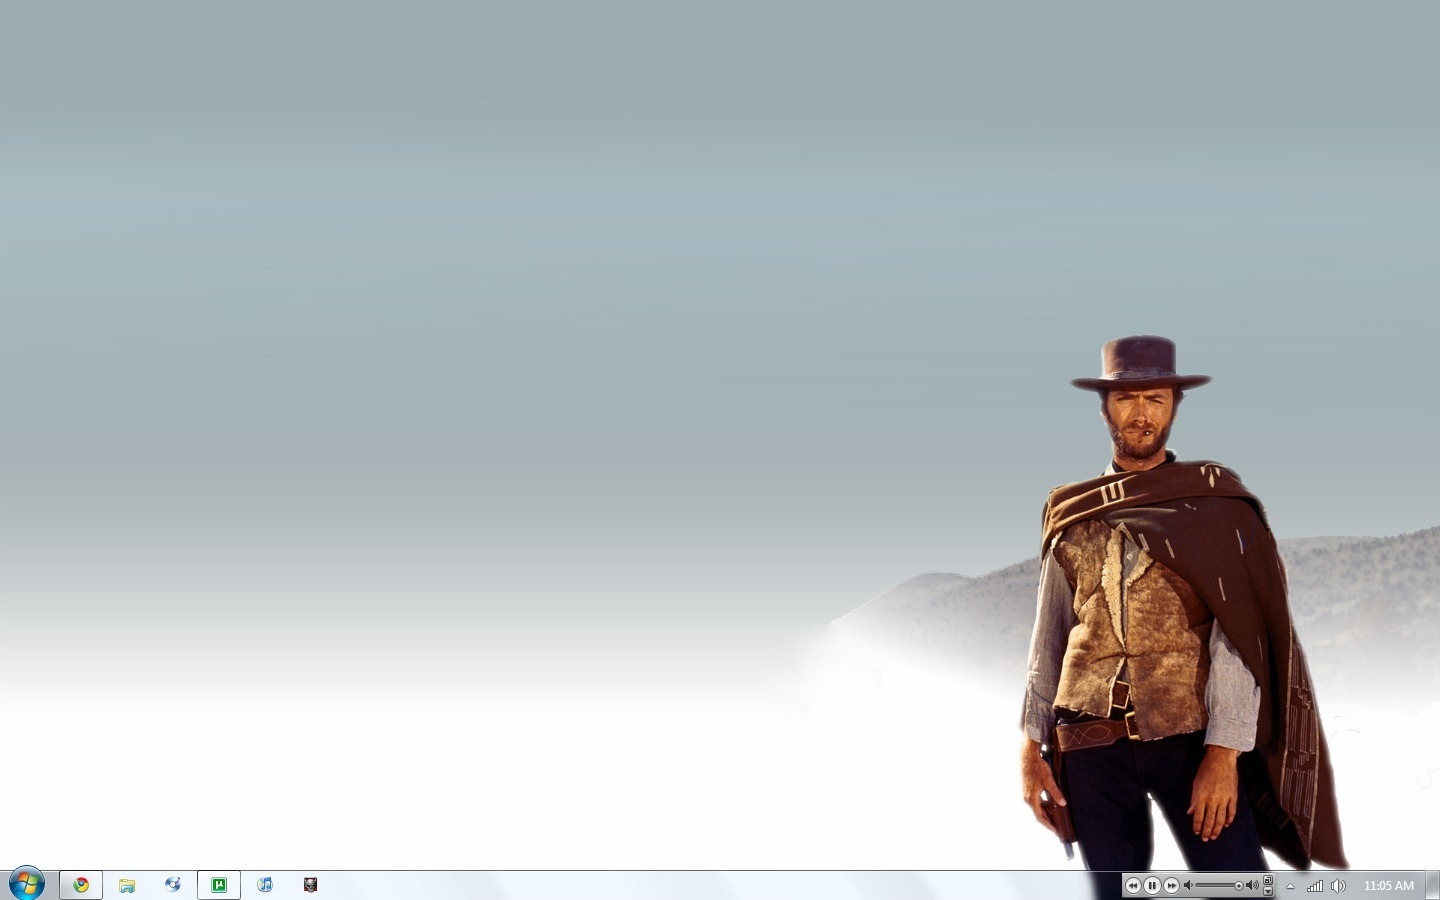 clint eastwood The Good HD Wallpaper